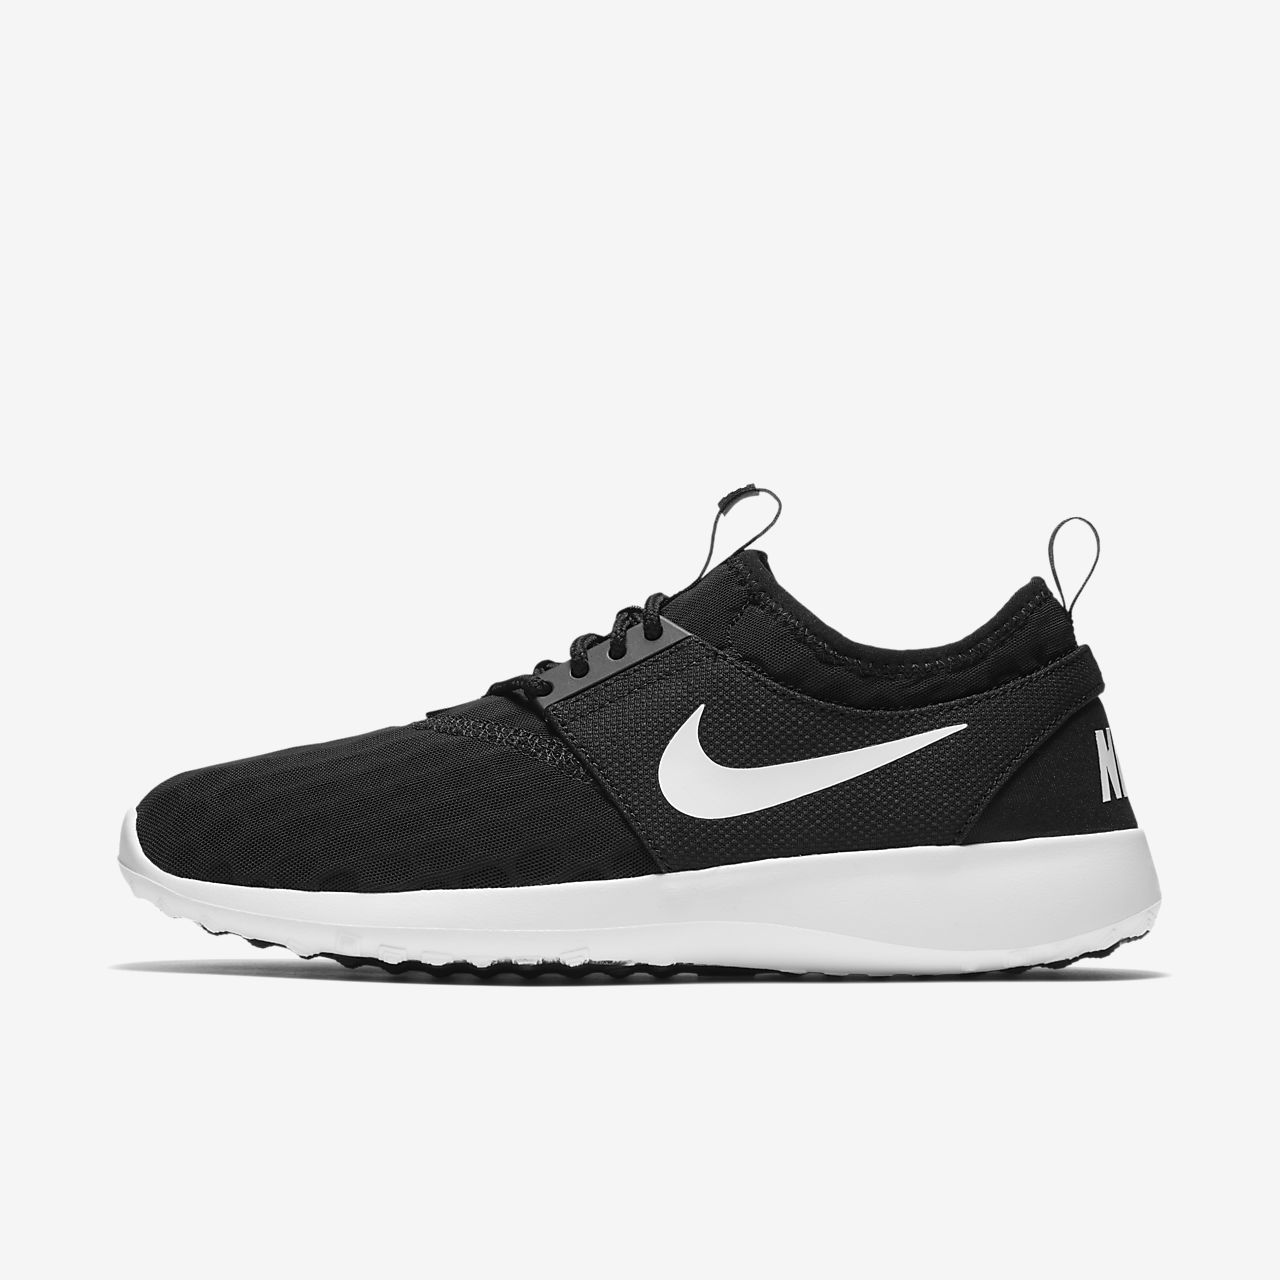 brand new d73c5 78edc Low Resolution Nike Juvenate Women s Shoe Nike Juvenate Women s Shoe